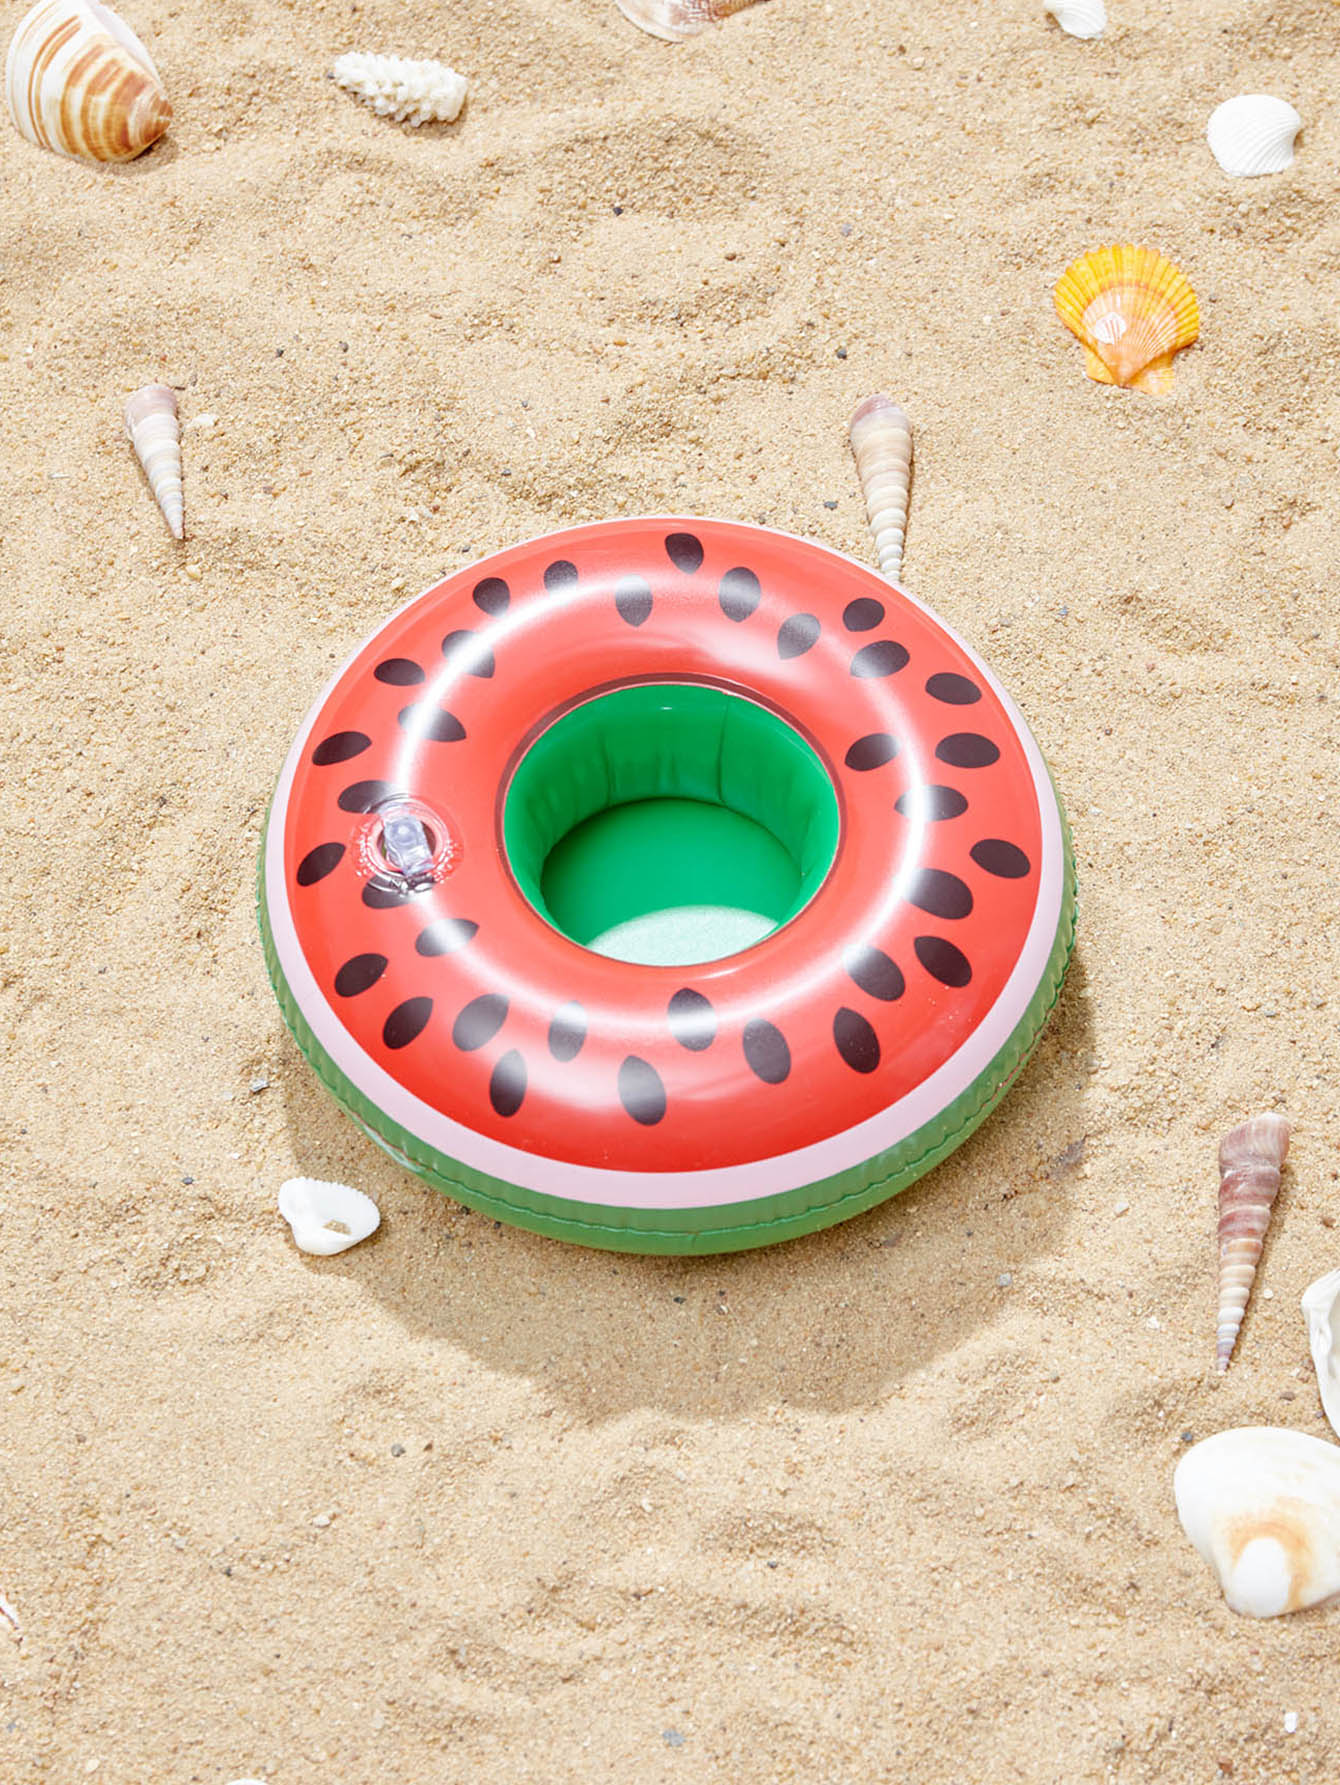 Watermelon Shaped Inflatable Drink Holder xiaribaobei watermelon inflatable swimming ring pool float